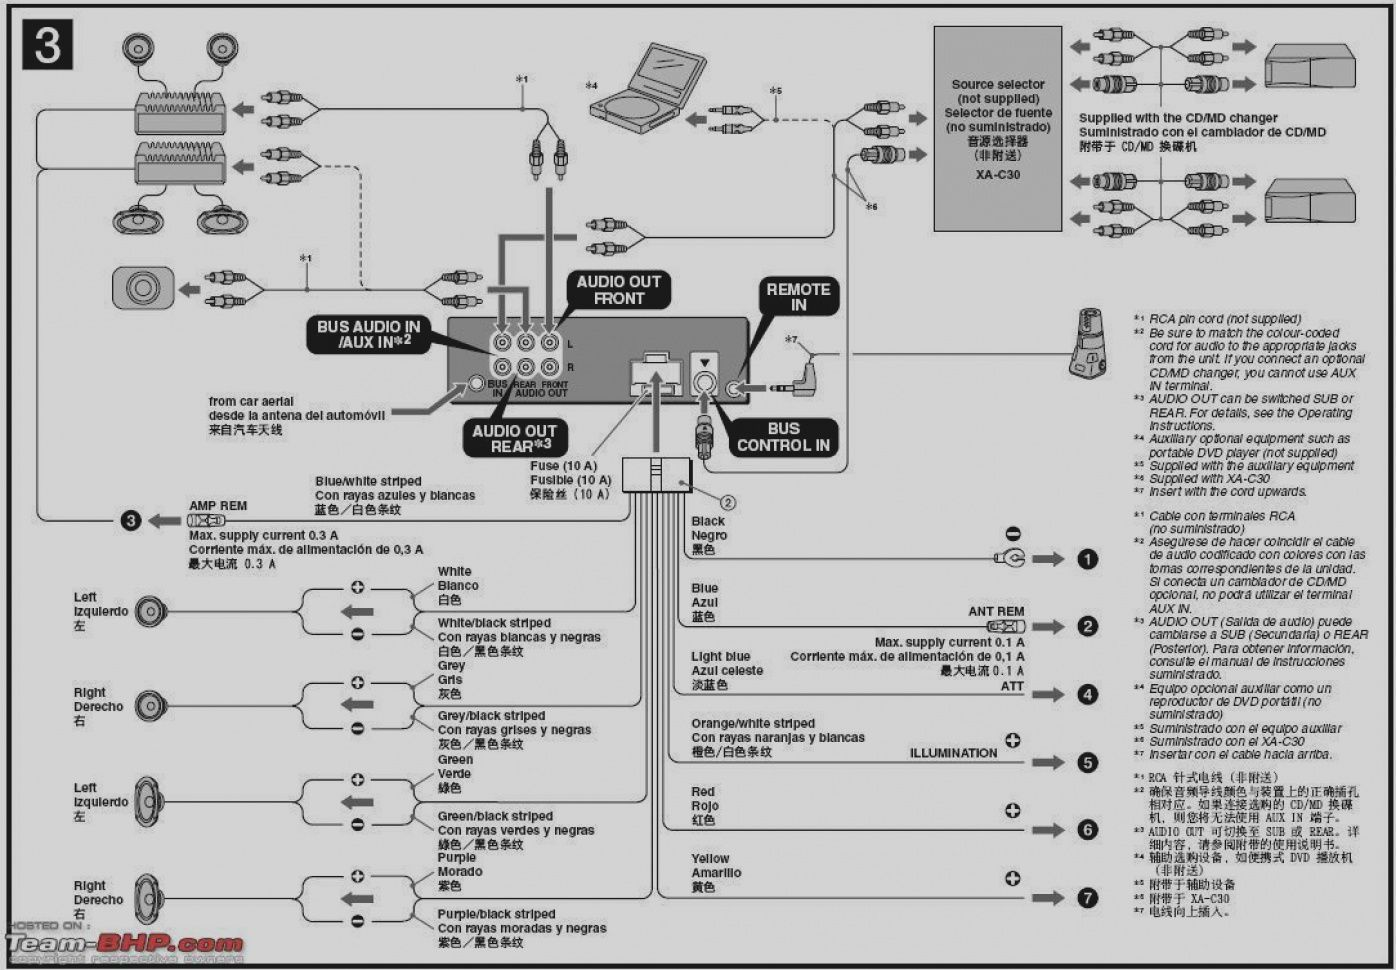 Sony Cdx Gt100 Wiring Diagram from i.pinimg.com